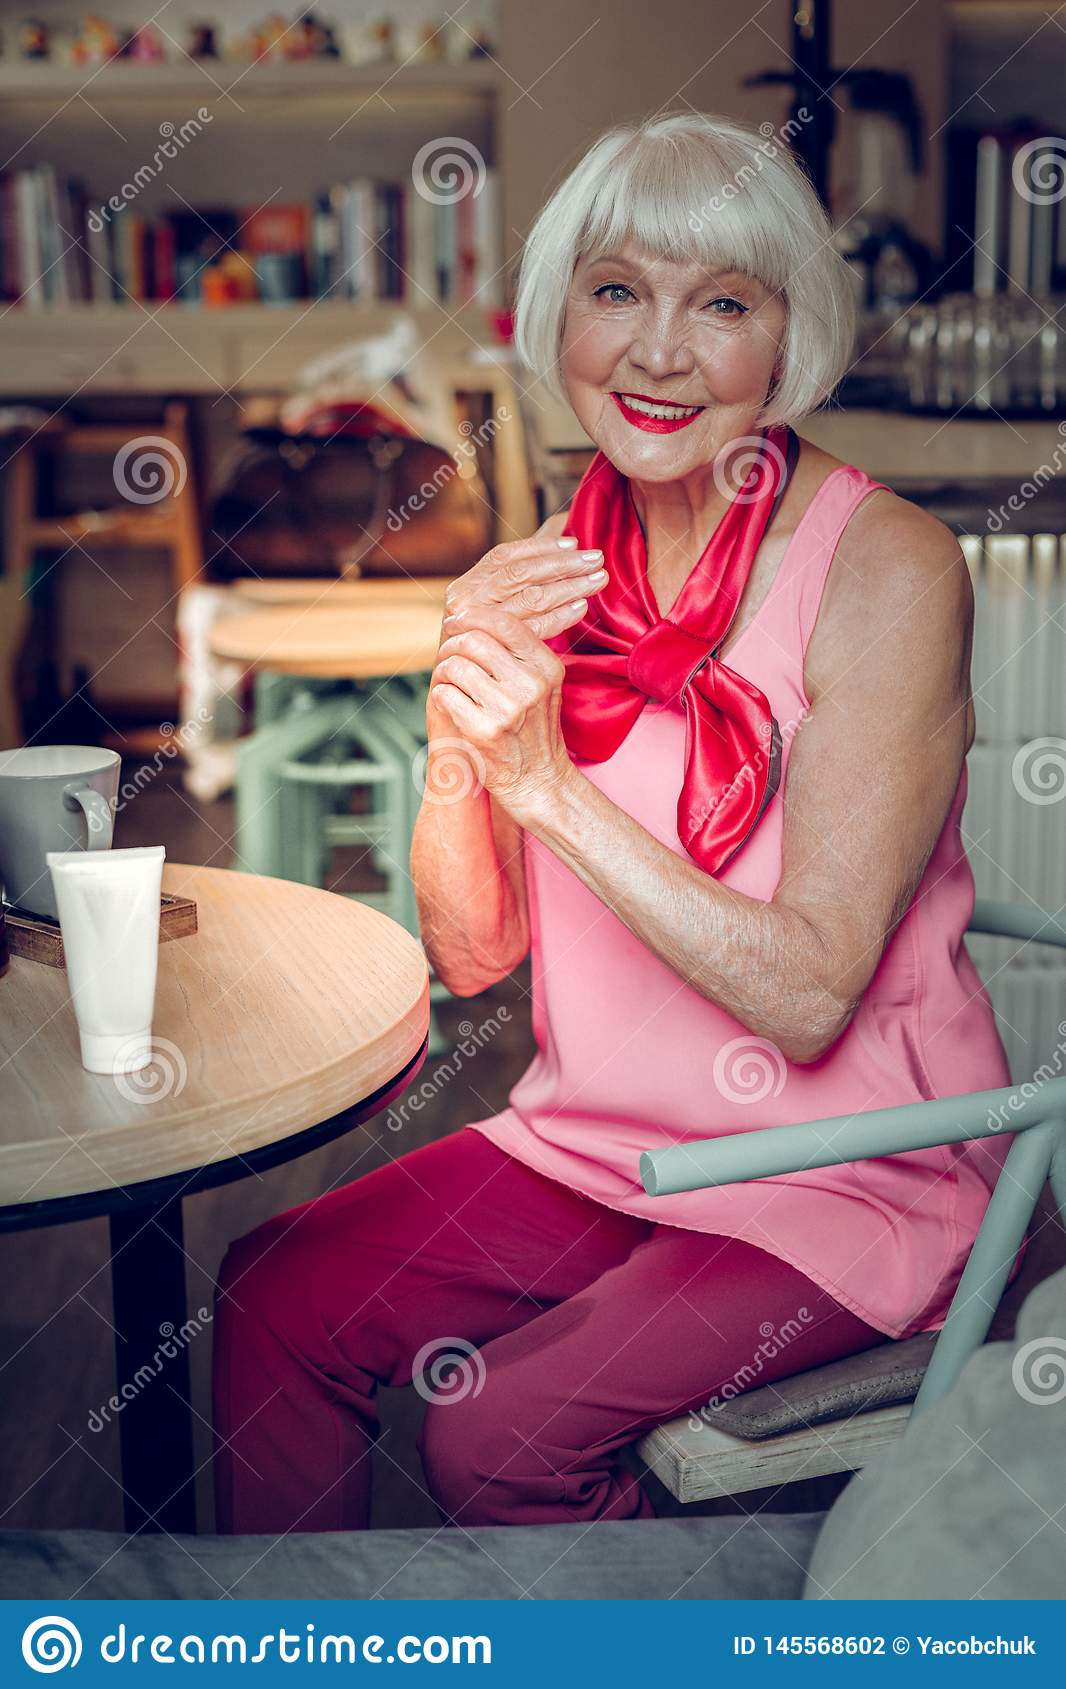 Positive cheerful woman sitting at the table